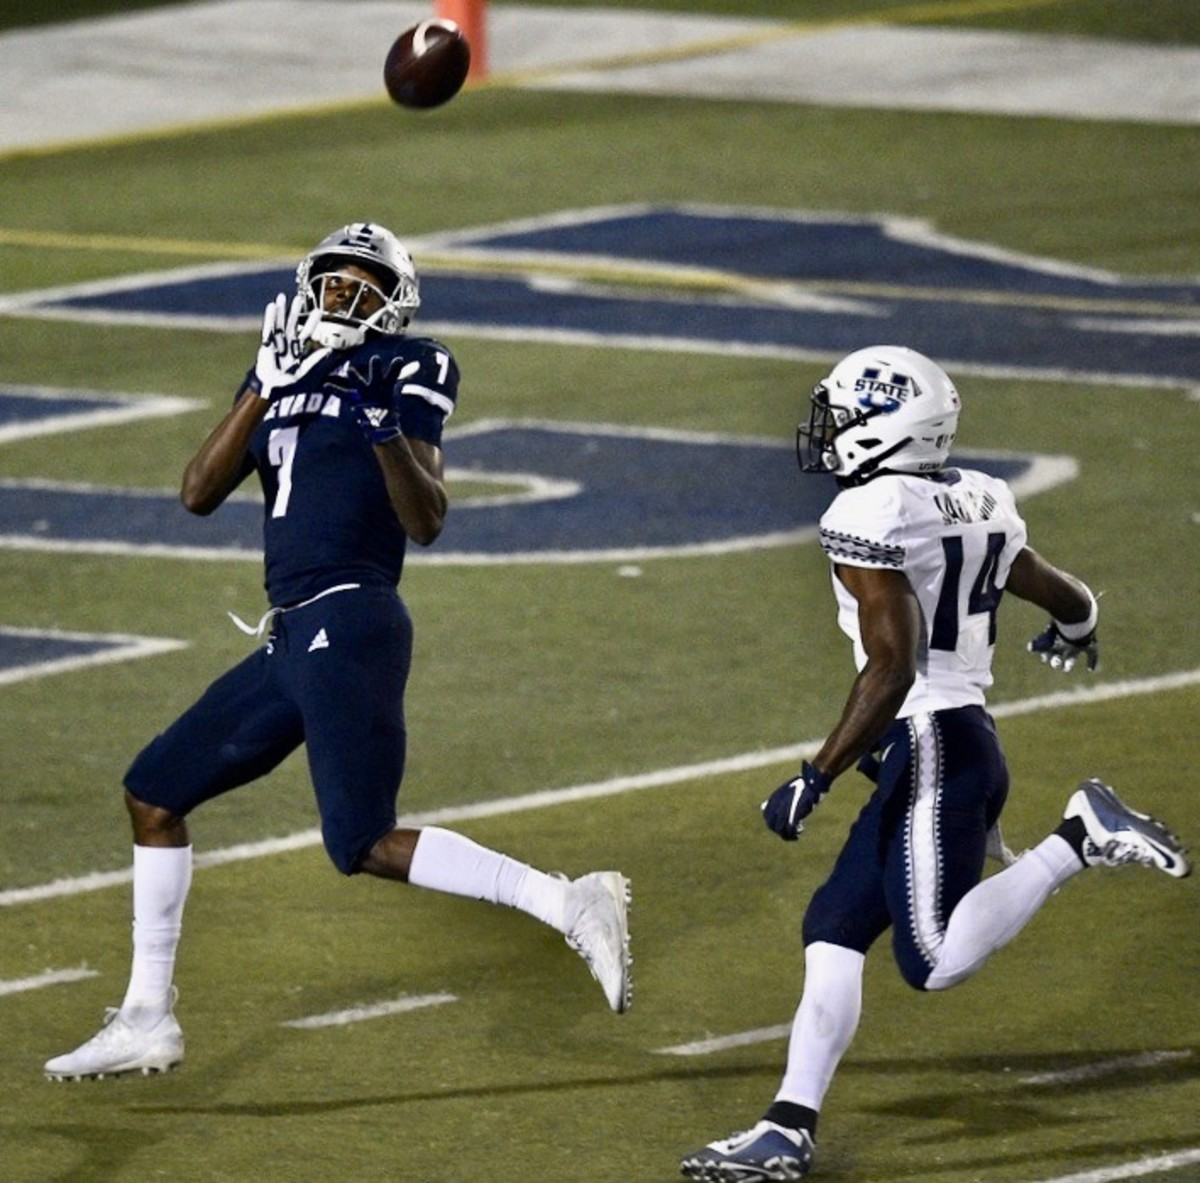 Nevada receiver Romeo Doubs hauls in a touchdown